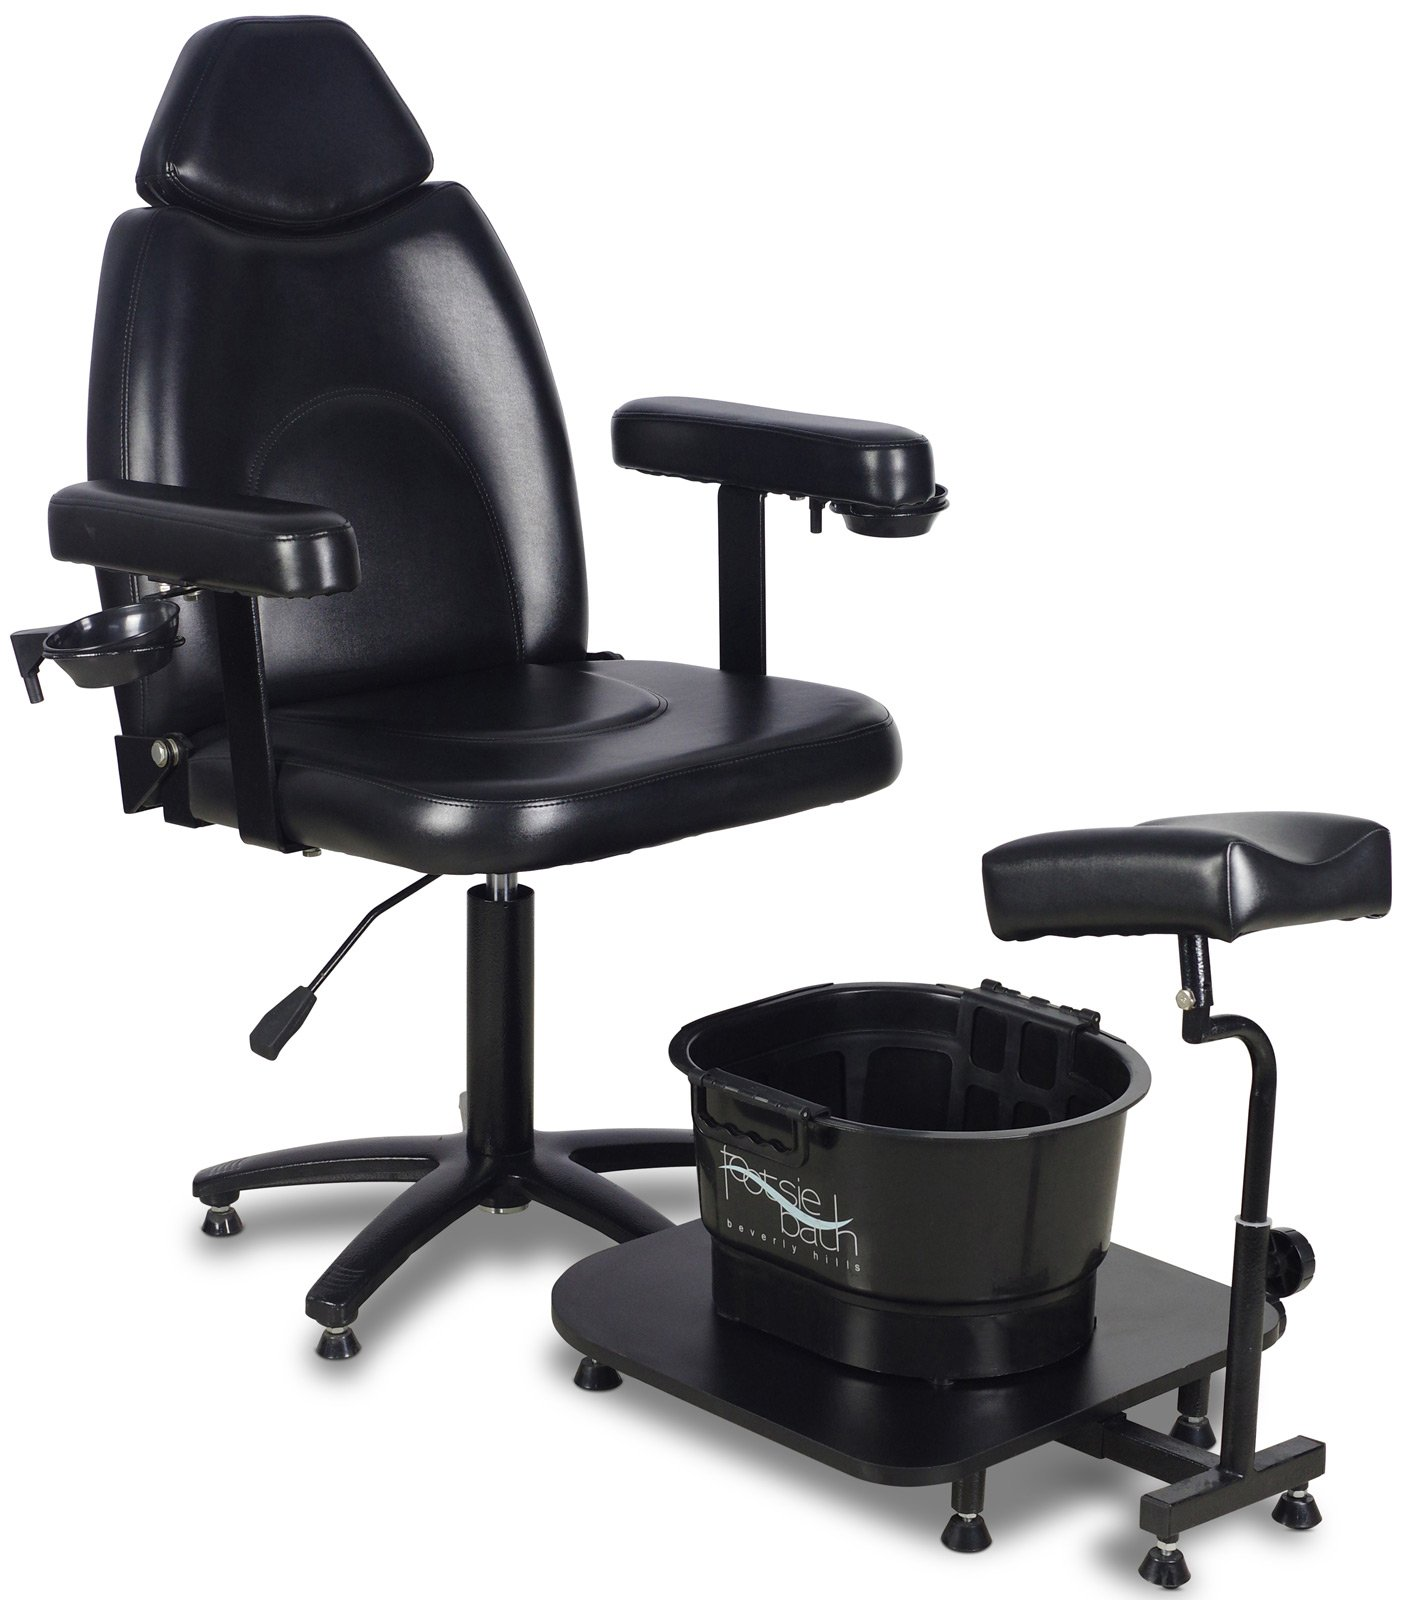 Icarus ''Zenith'' Black Pedicure Foot Spa Station Chair by Icarus (Image #1)